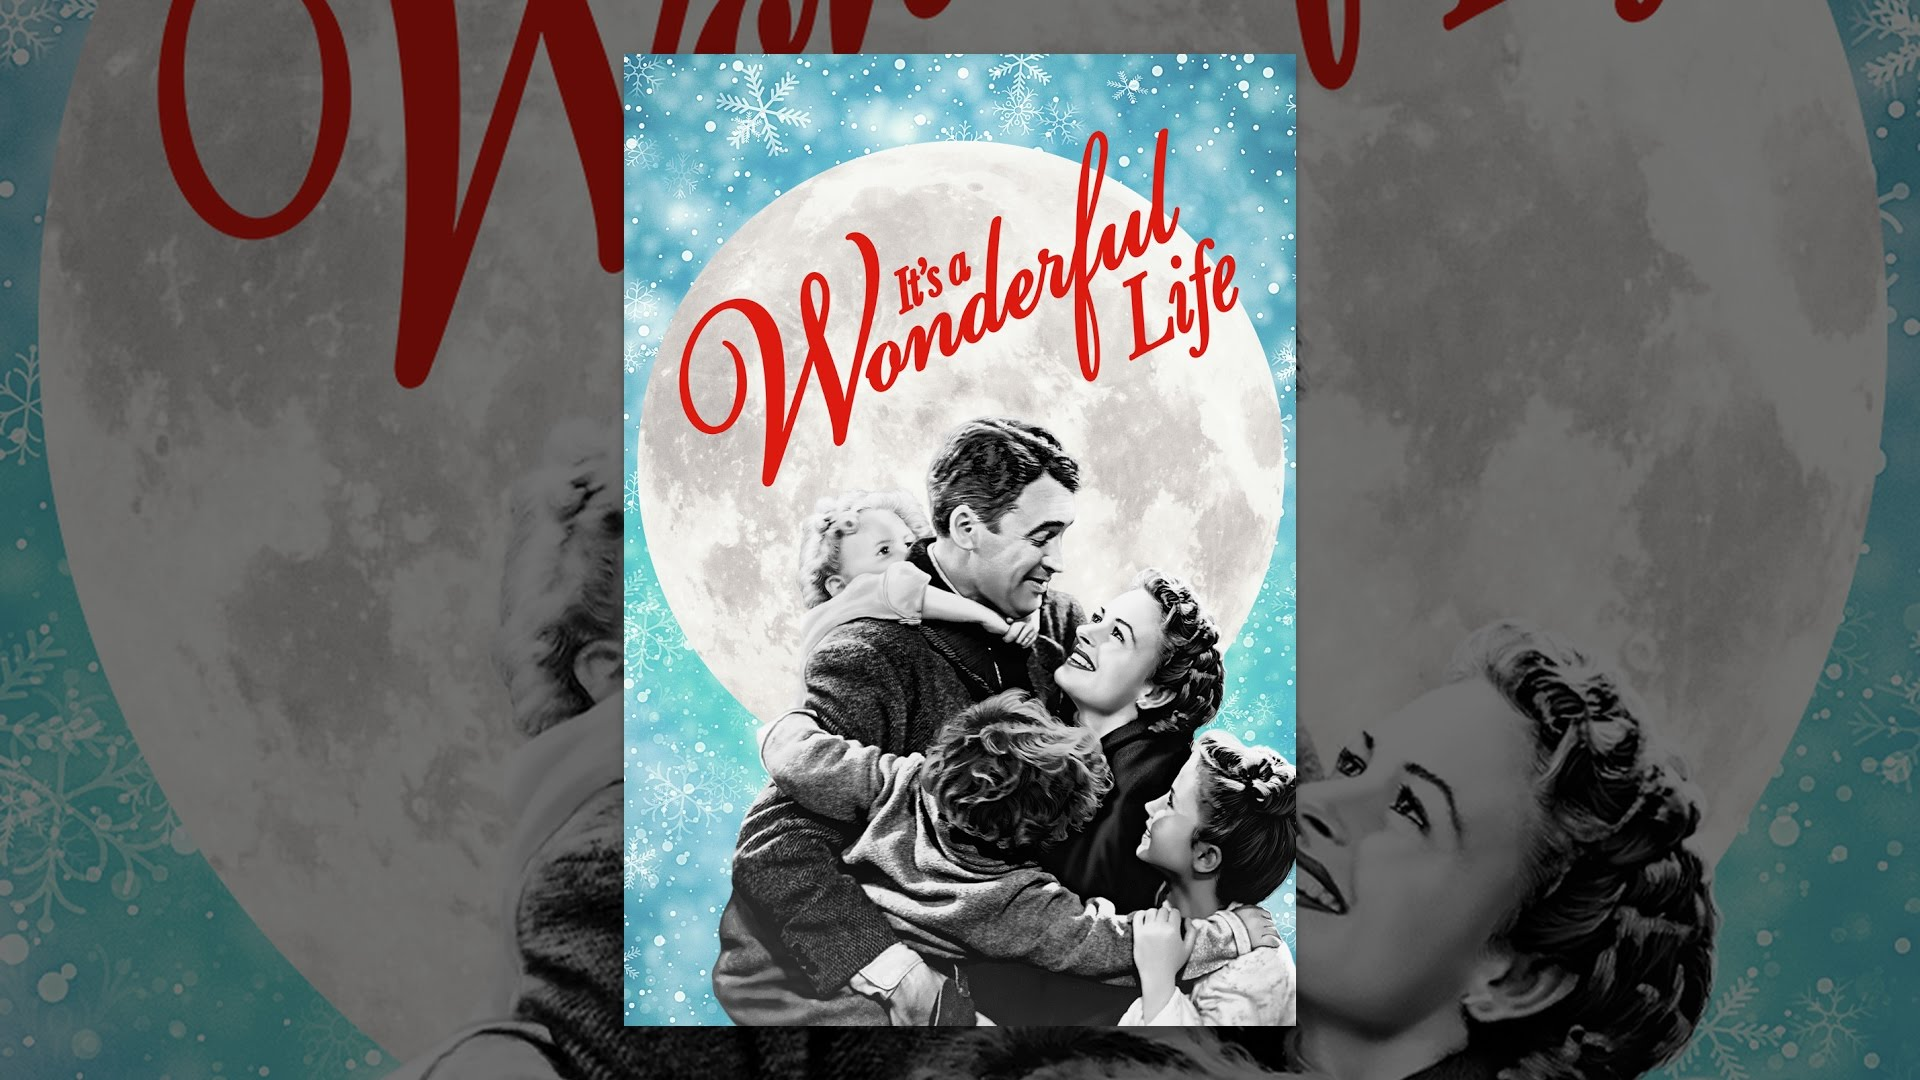 What to Watch on Saturday: 'It's a Wonderful Life' and a blizzard of ...